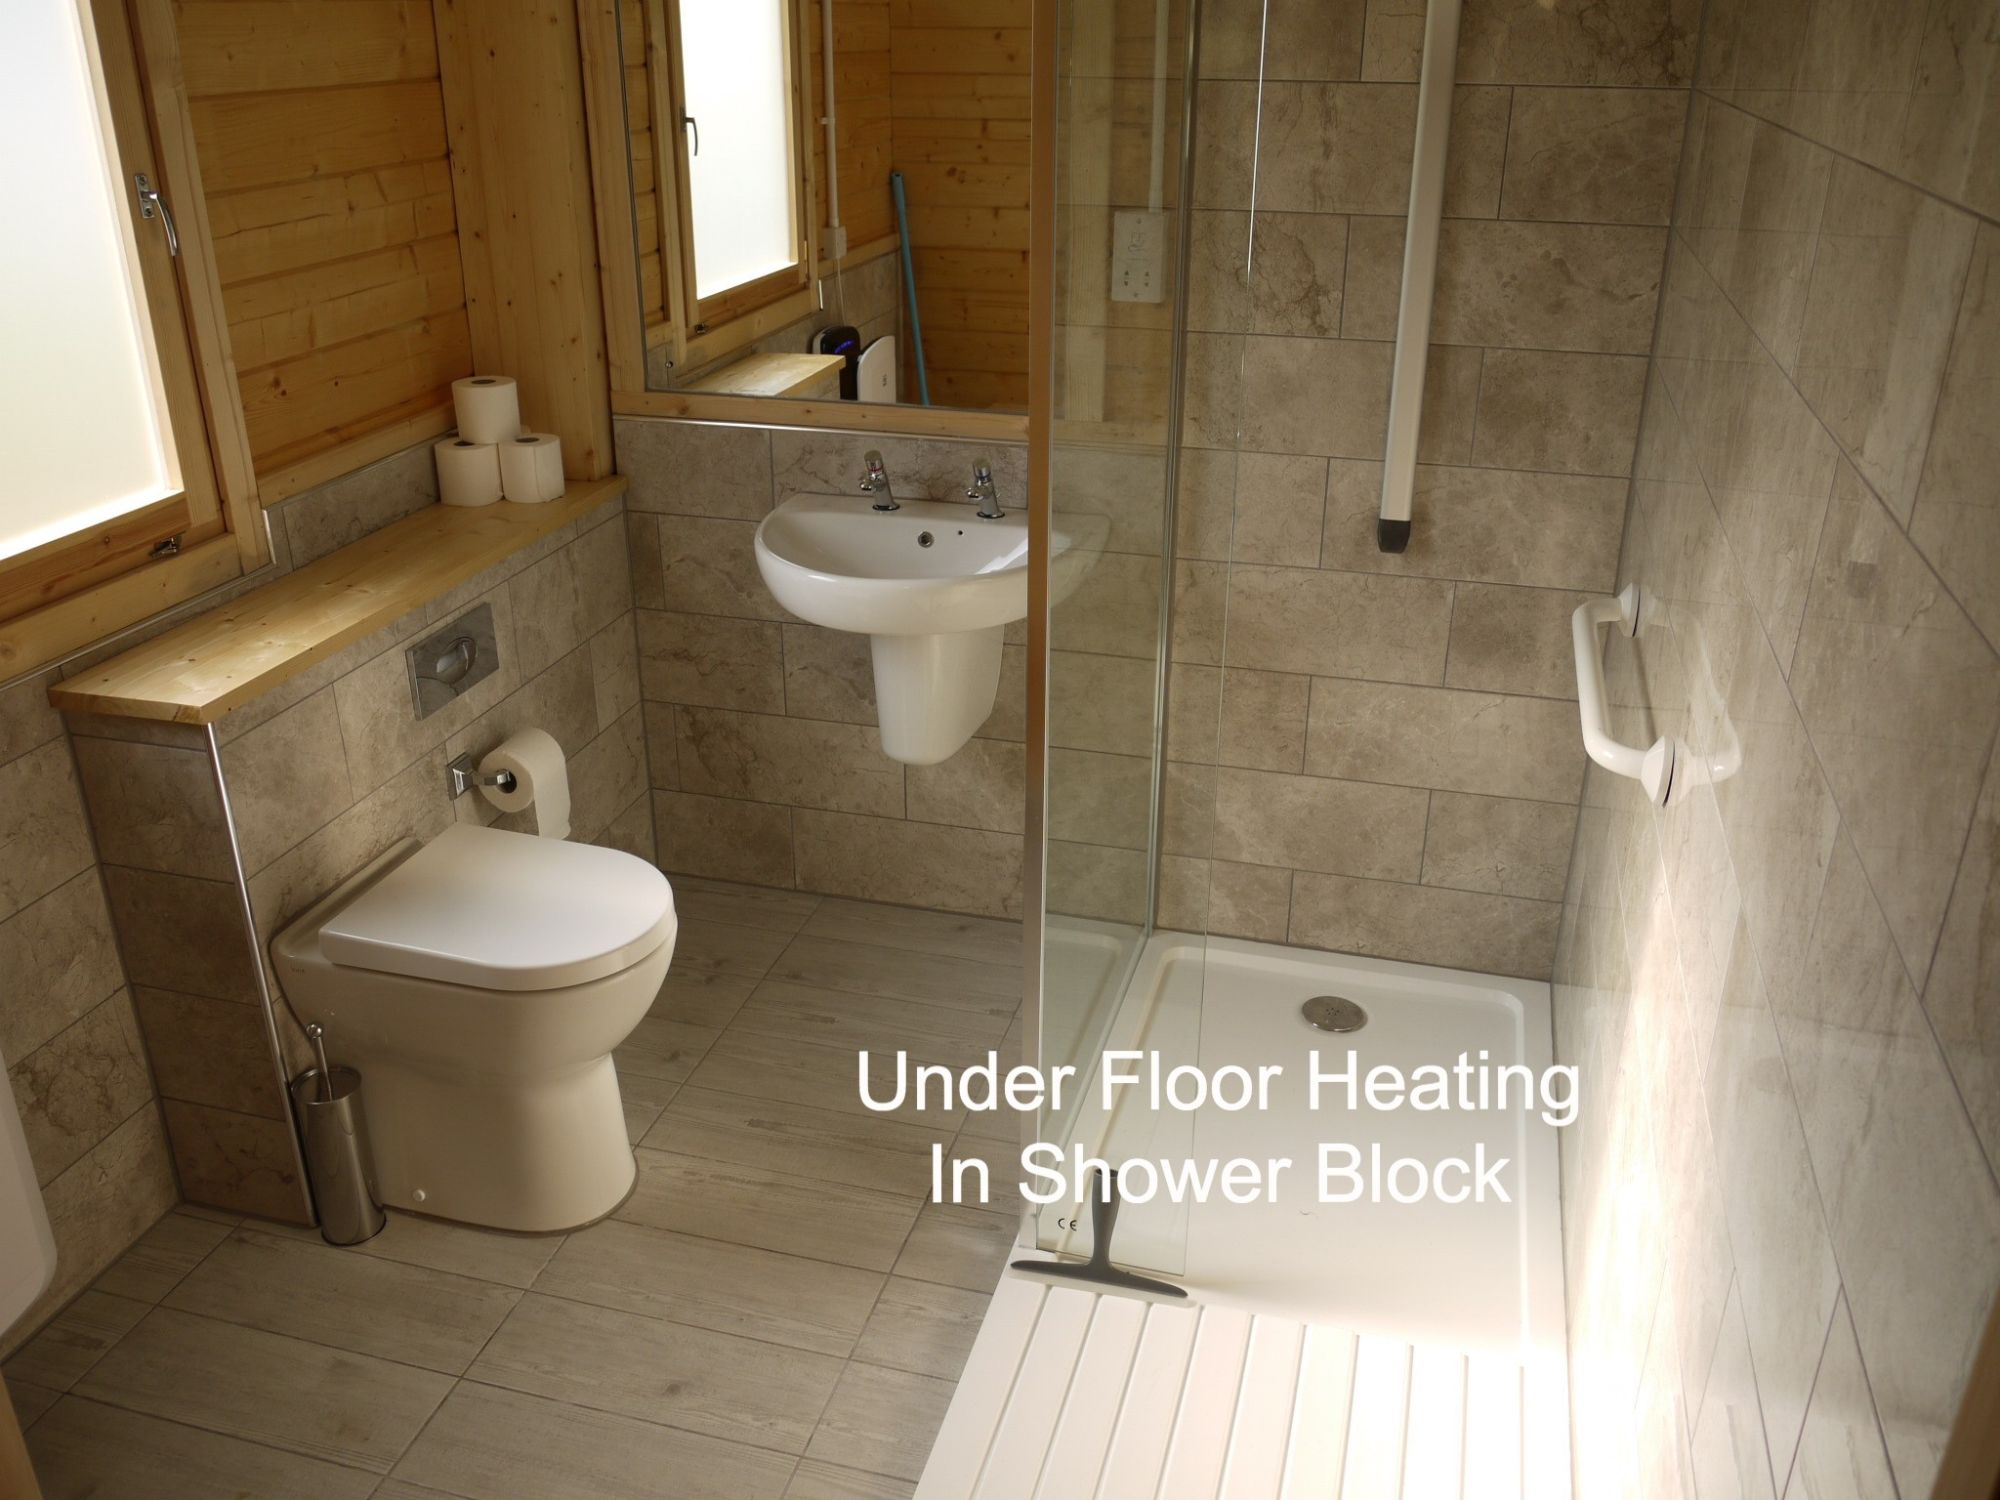 inside-shower-block-caption2